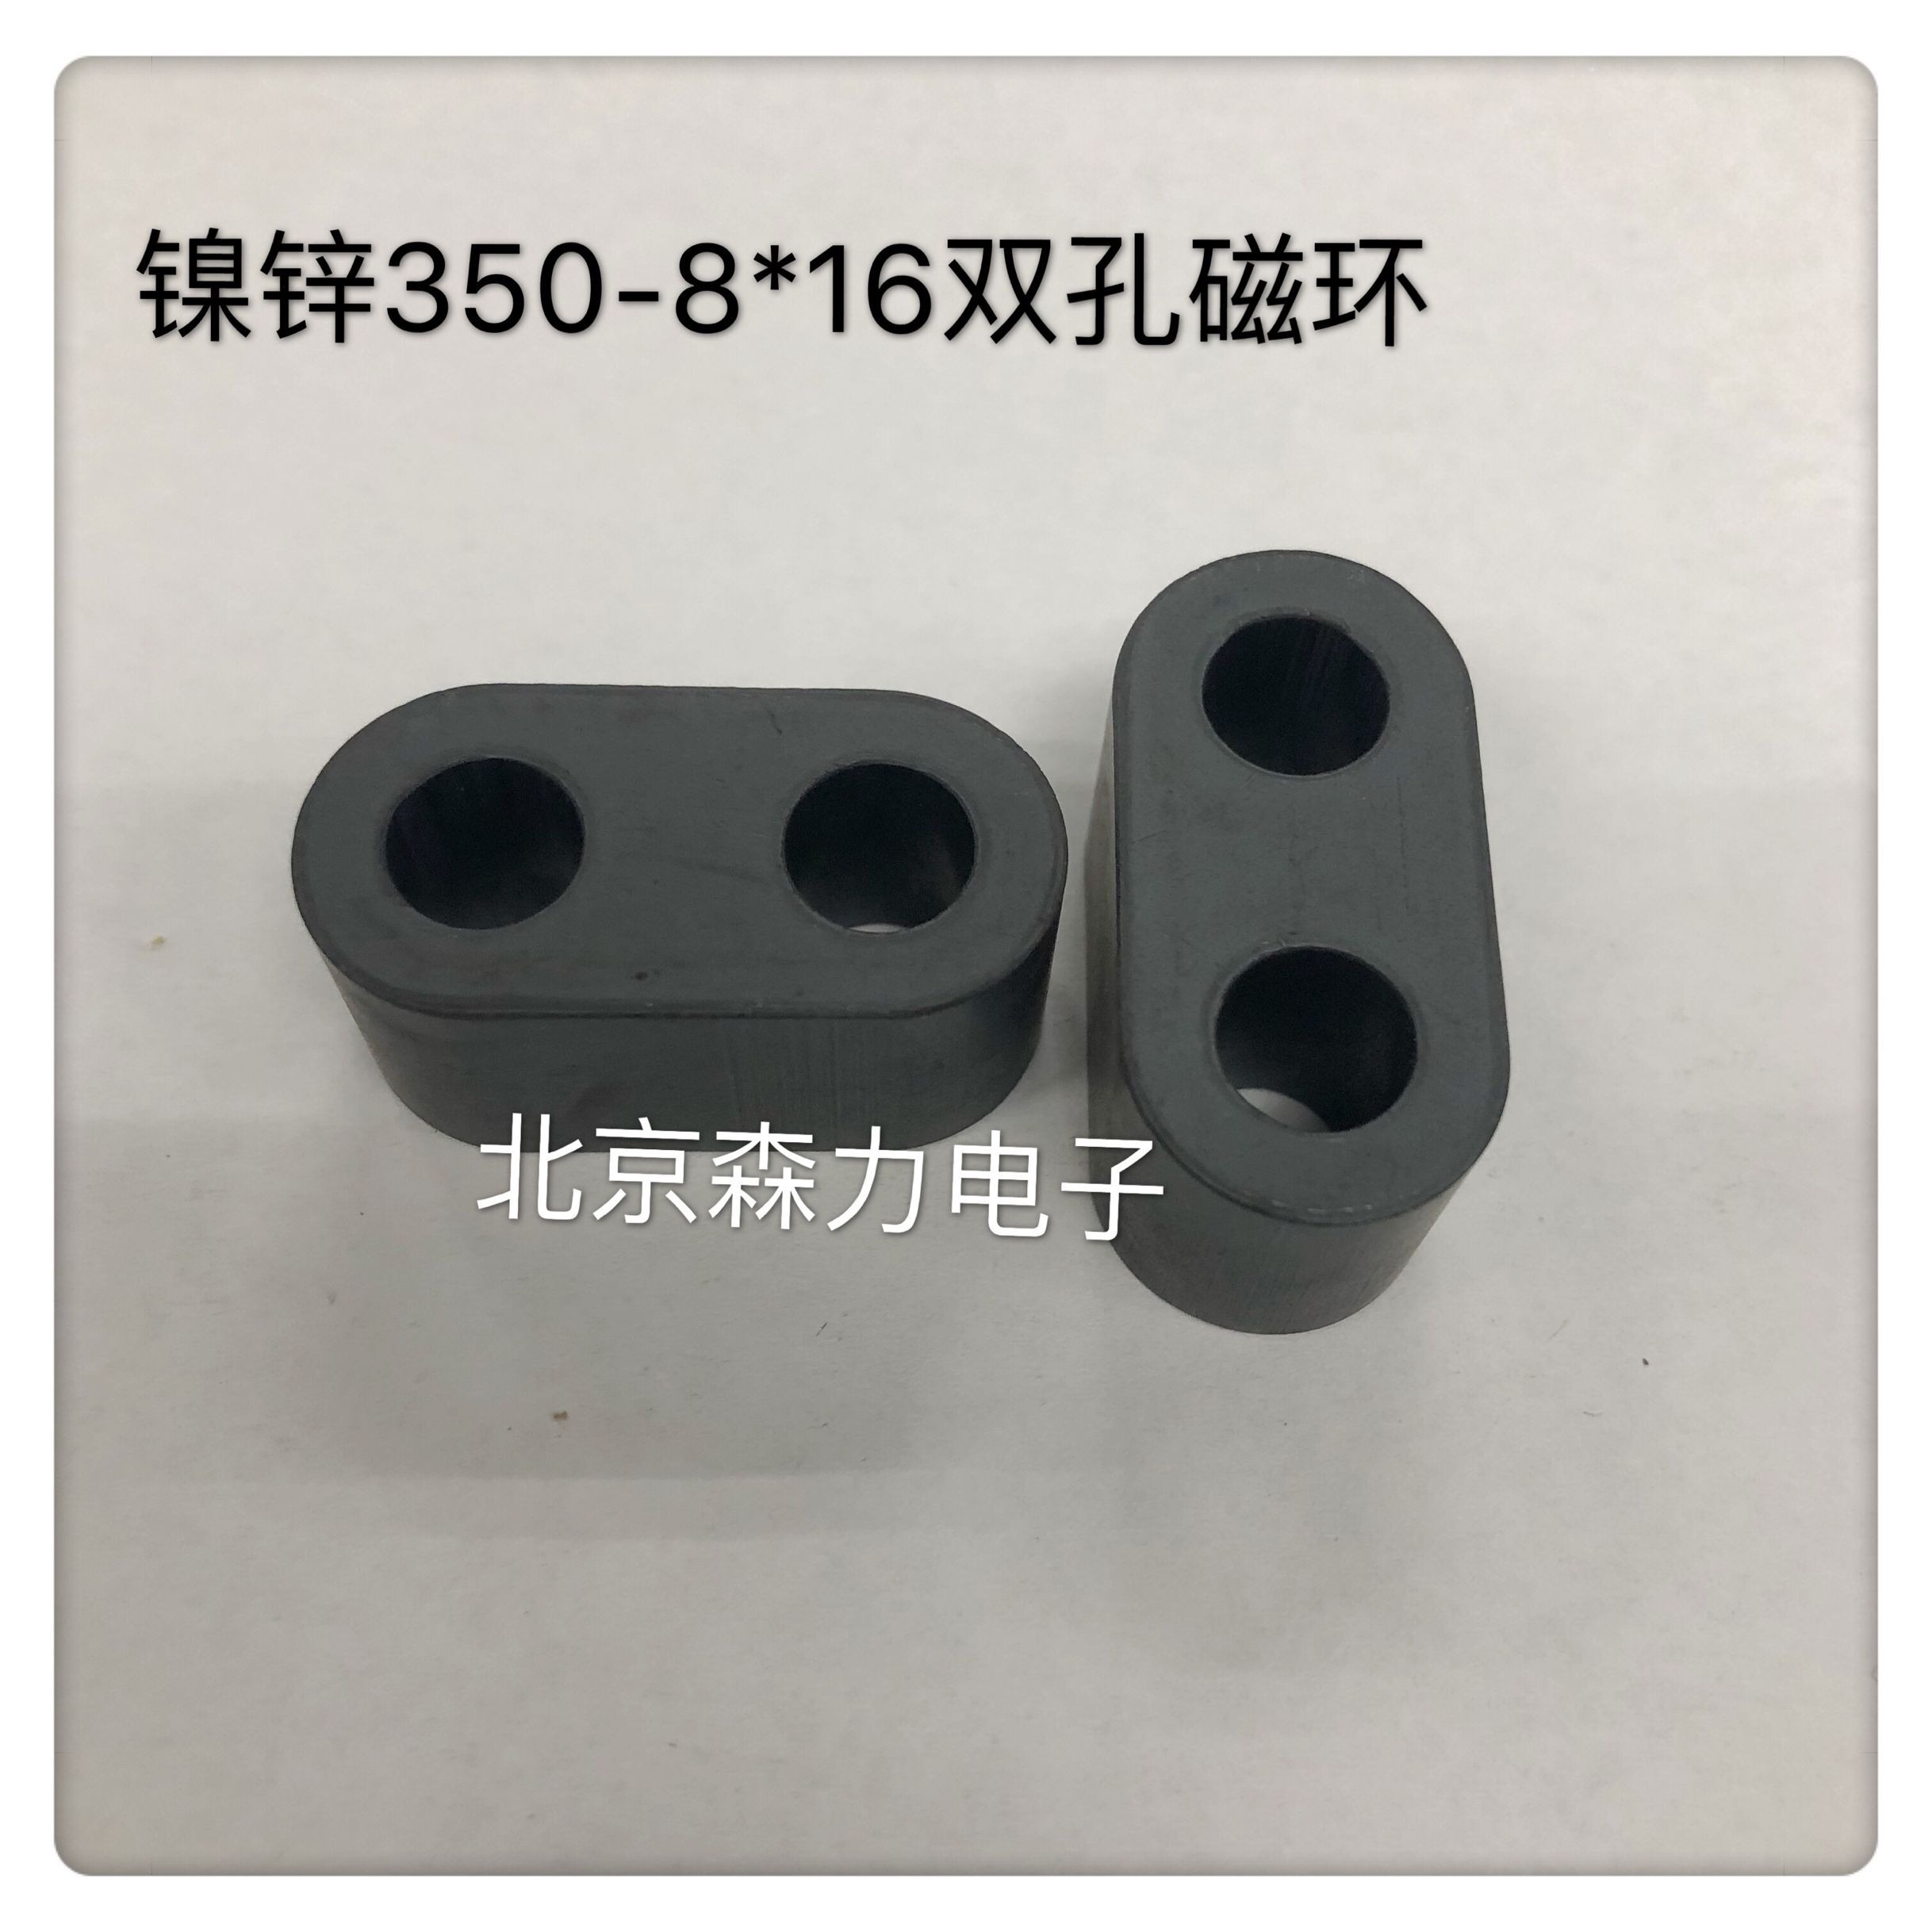 Nickel Zinc NXO-350 Double Hole Magnetic Core Filter Antenna Short Wave Balun Signal Output Launch